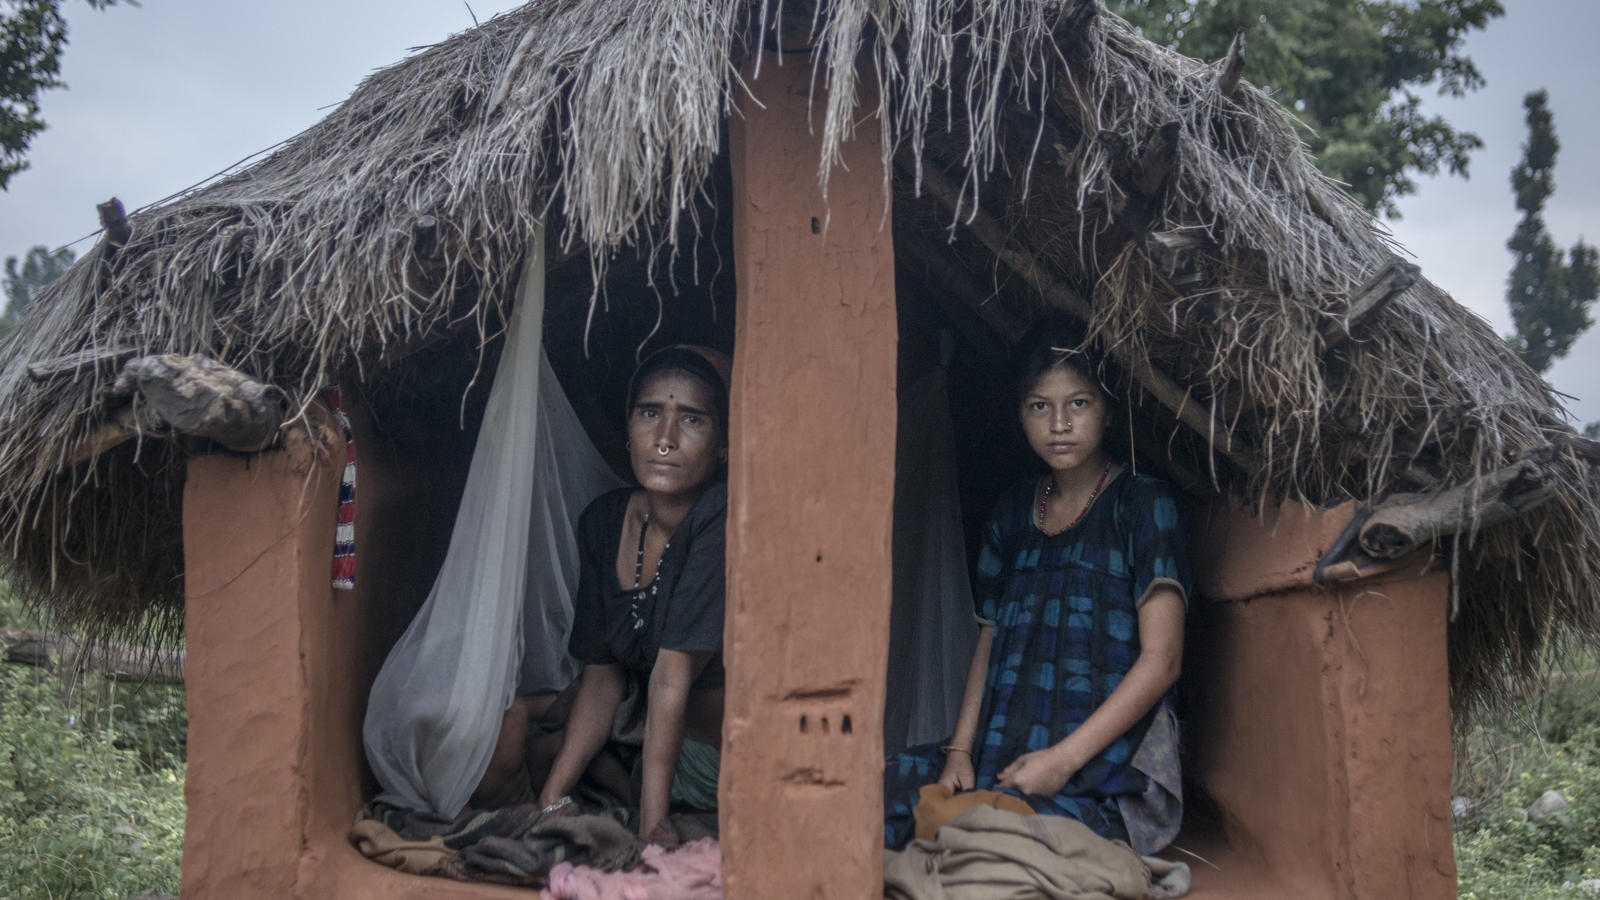 Mangu Bika, 14, shares the chaupadi hut with Chandra Tiruva, 34, to sleep in, Surkhet district, Nepal, 2013.